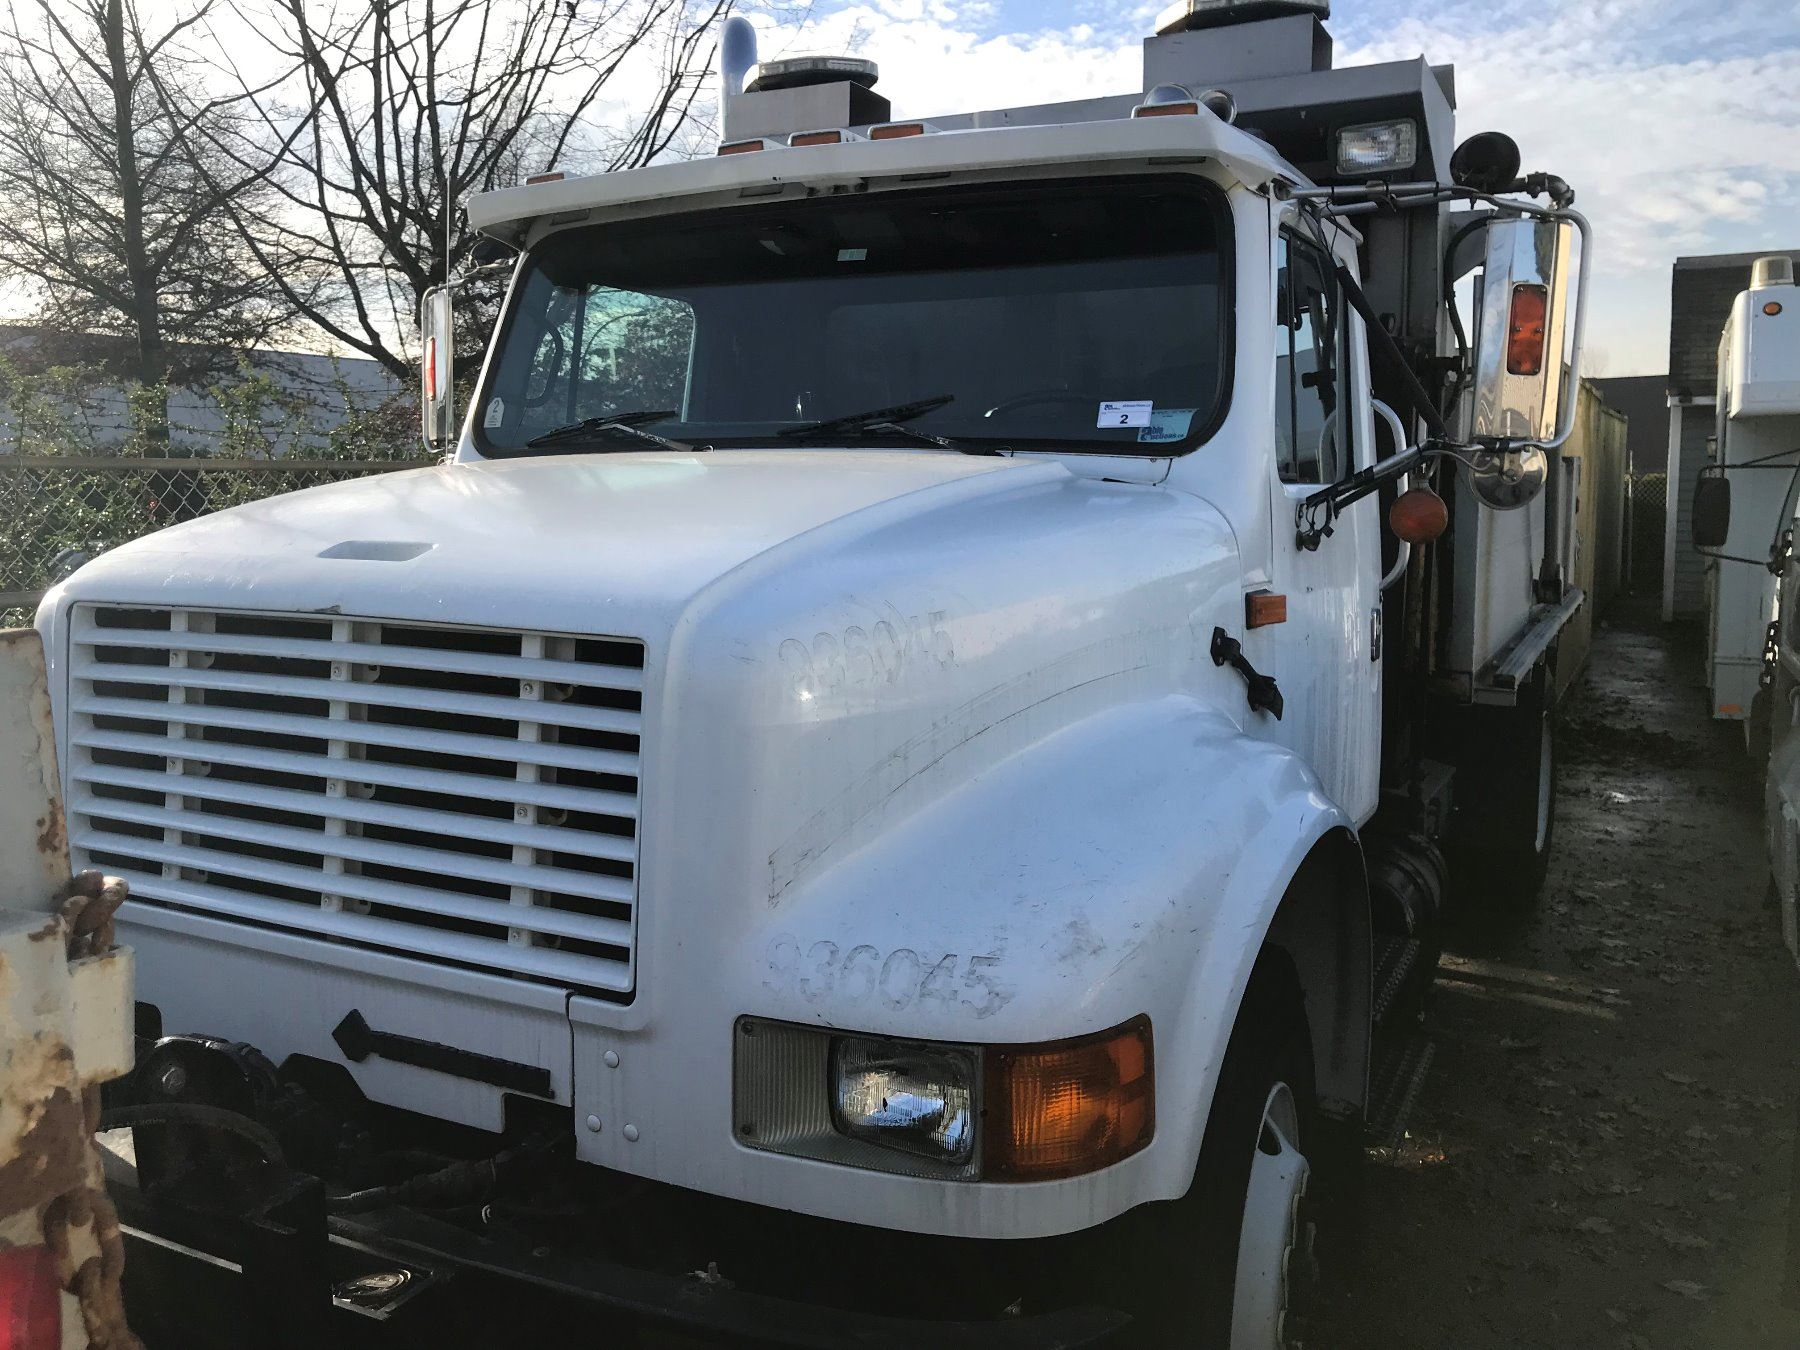 1993 INTERNATIONAL DUMP TRUCK, WHITE, DIESEL, MANUAL, VIN#1HTSDN2R0PH483669,  392,253KMS, RD,TW,CR,